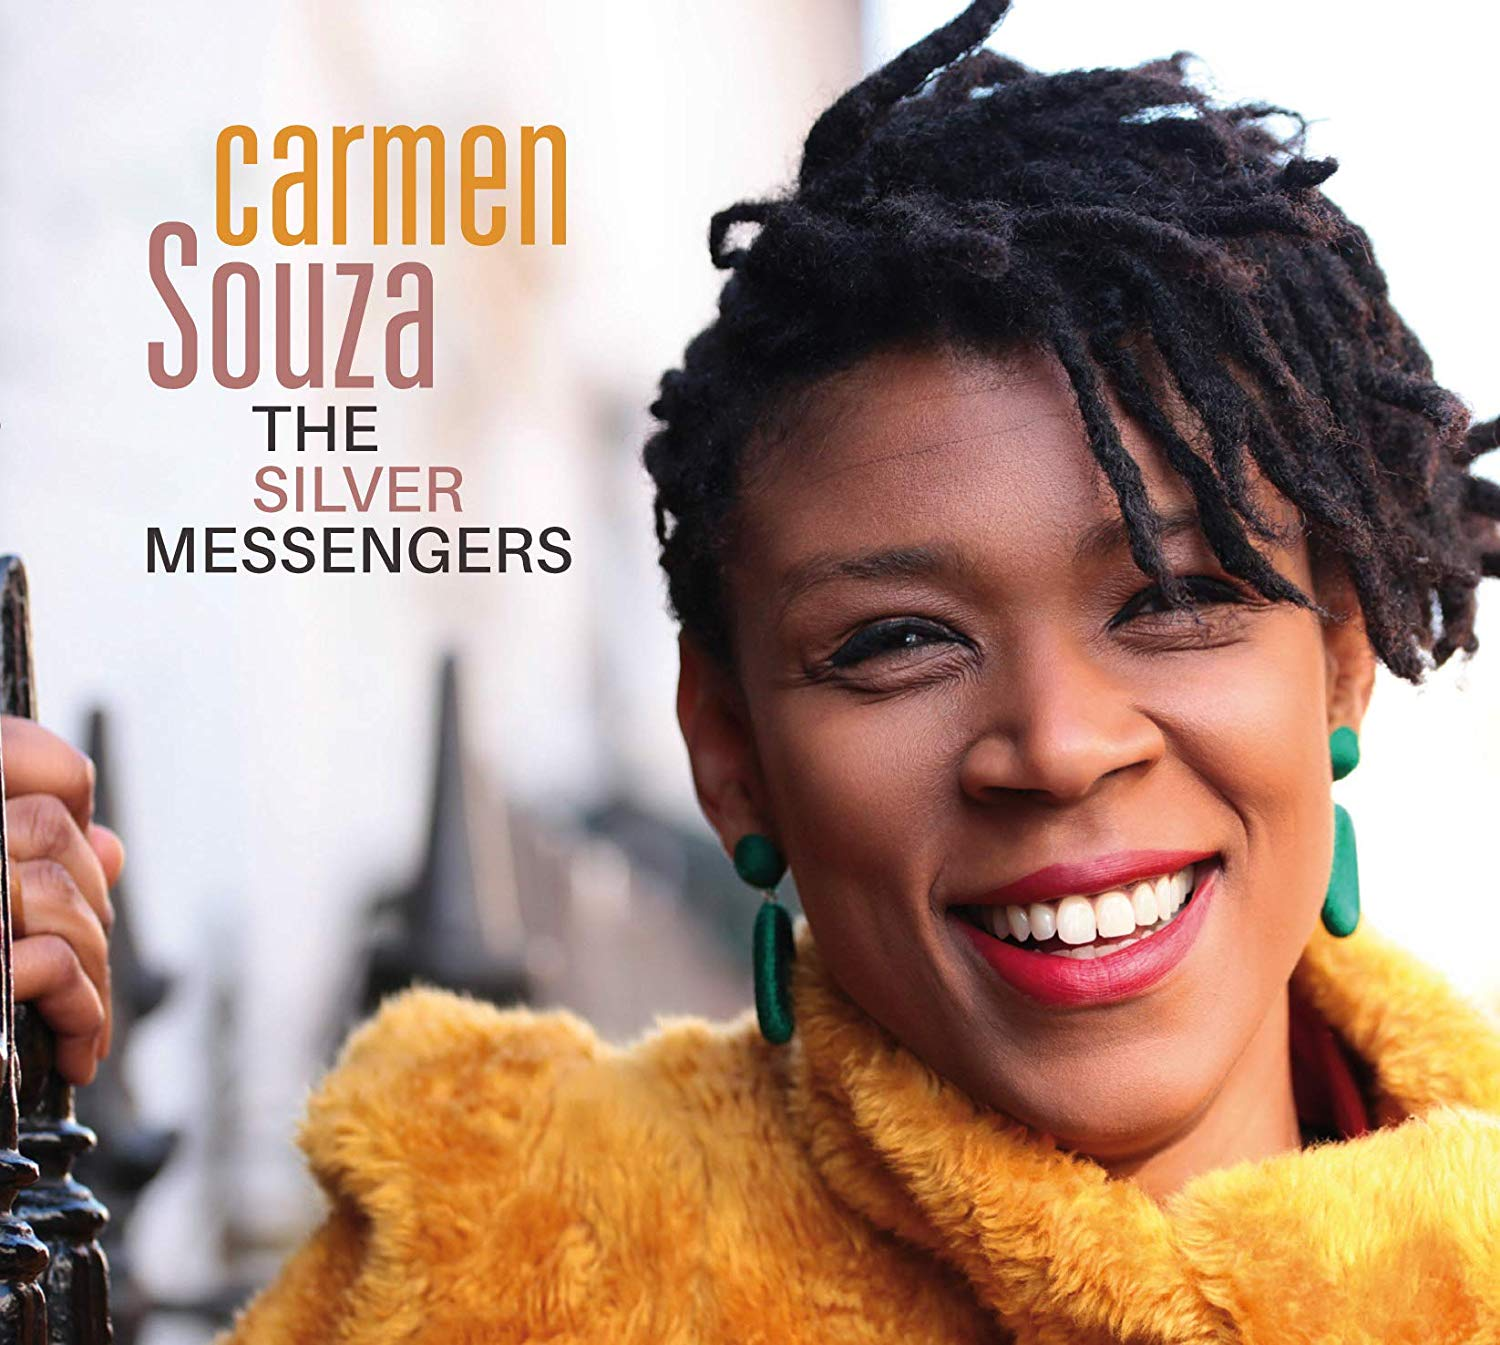 CARMEN SOUZA - The Silver Messengers cover